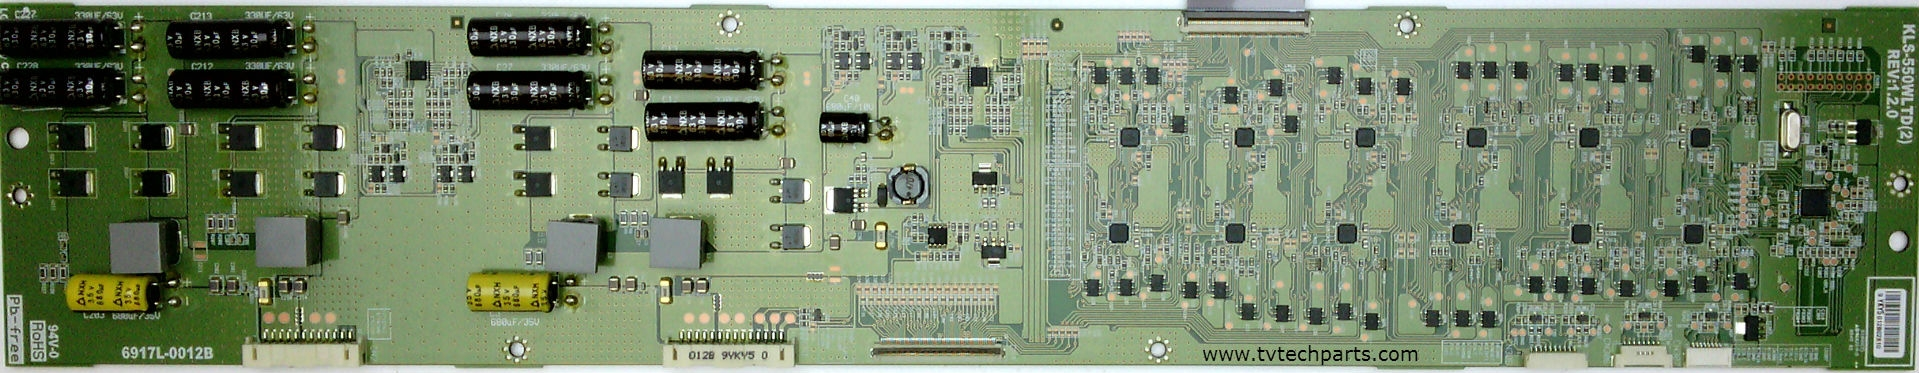 Vizio Model VF551XVT Inverter Board Part Number 6917L-0012B